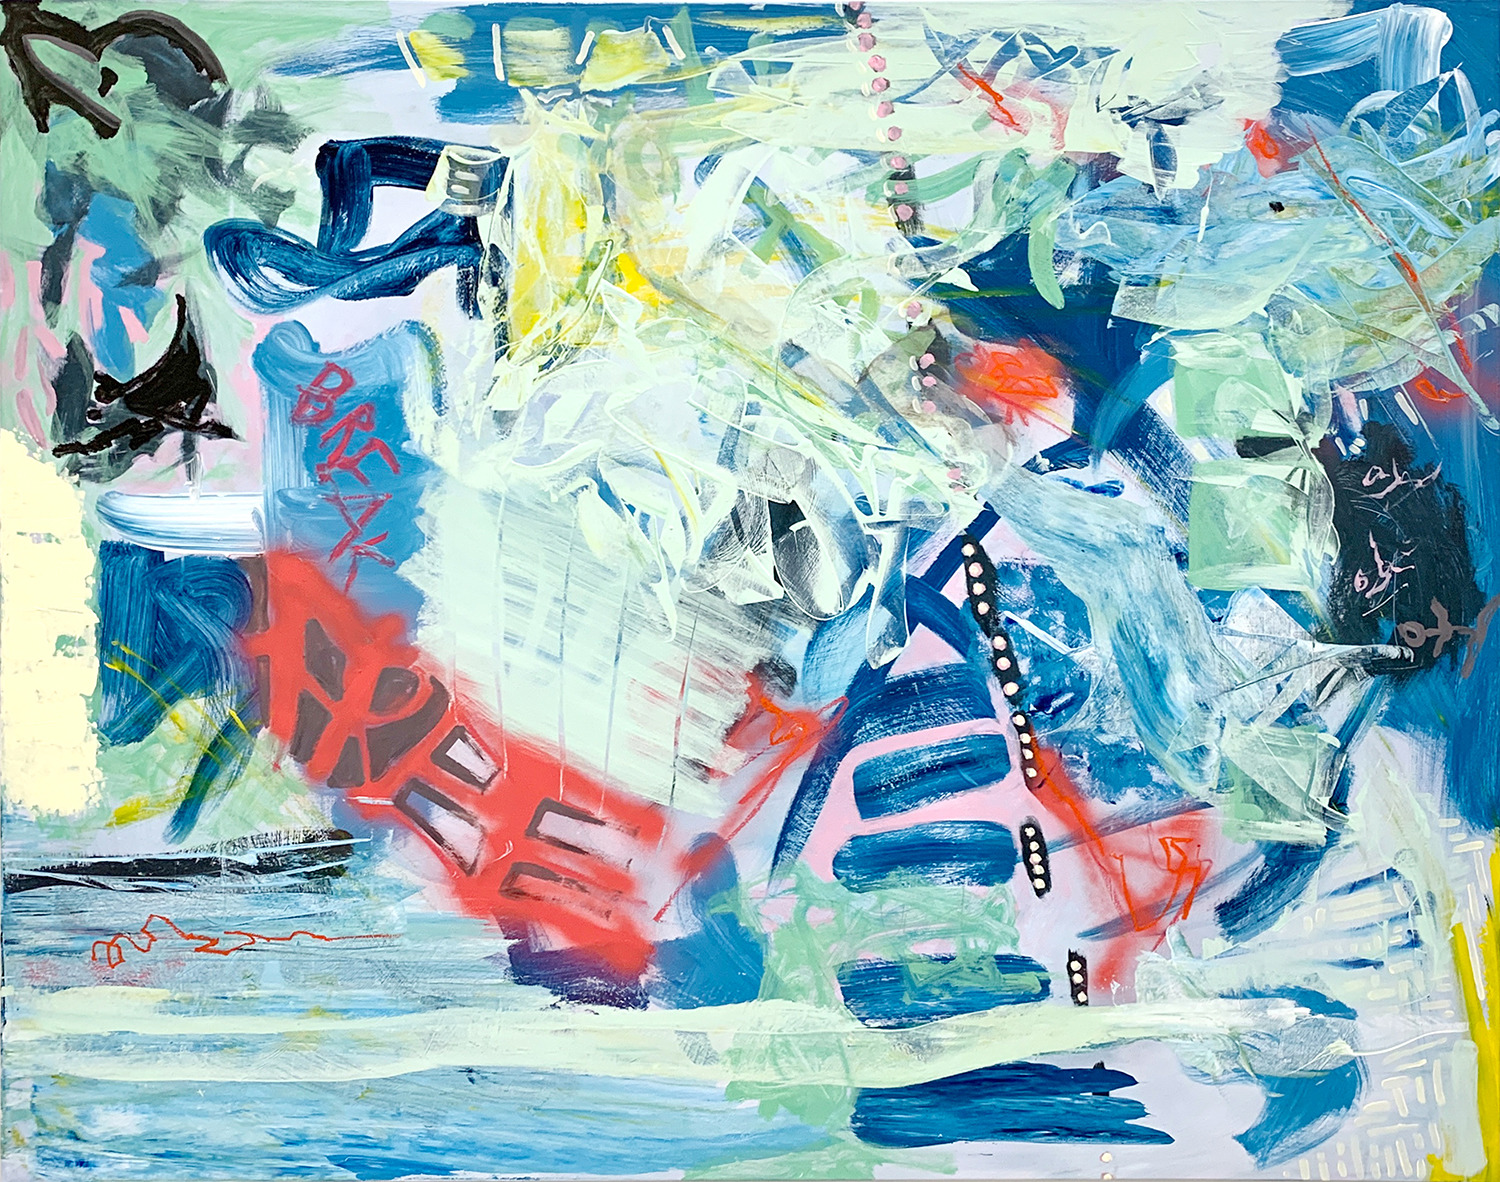 Katewilson.breakfree.paintingoncanvas.48x60inches.2020.front1cropped.lr jkdkjr